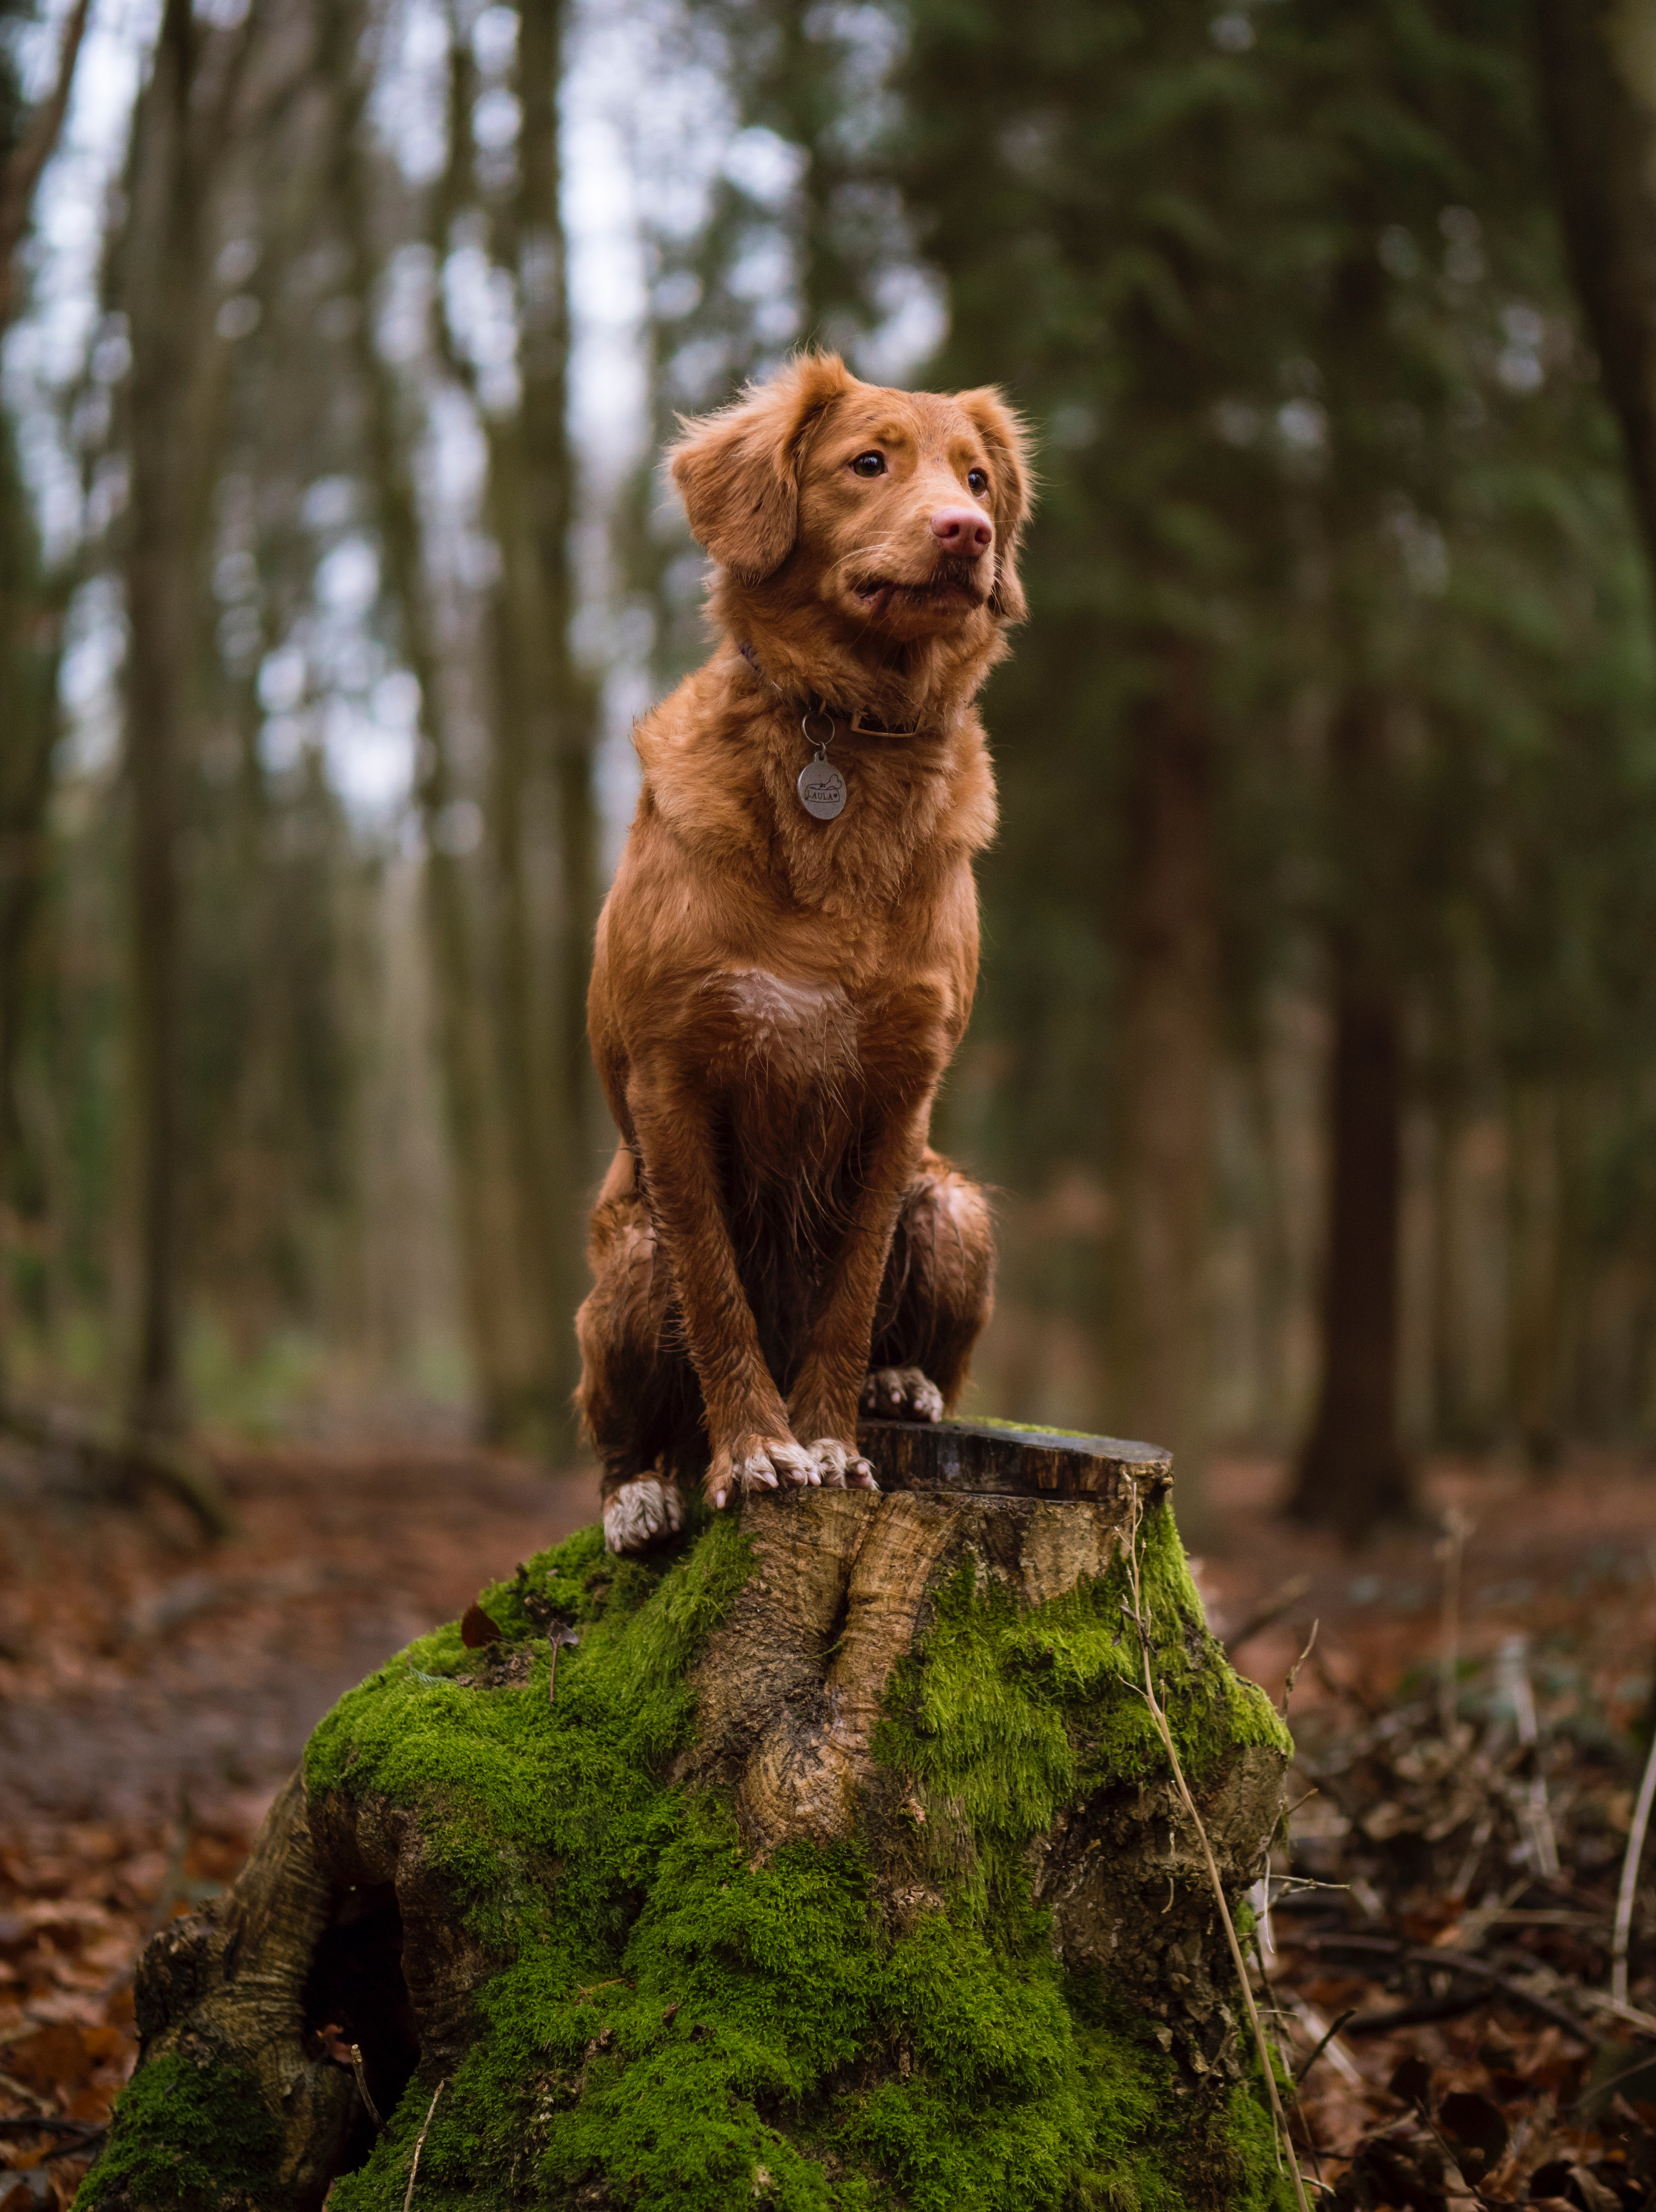 158093 download wallpaper Animals, Dog, Is Sitting, Sits, Stump, Moss, Stroll screensavers and pictures for free